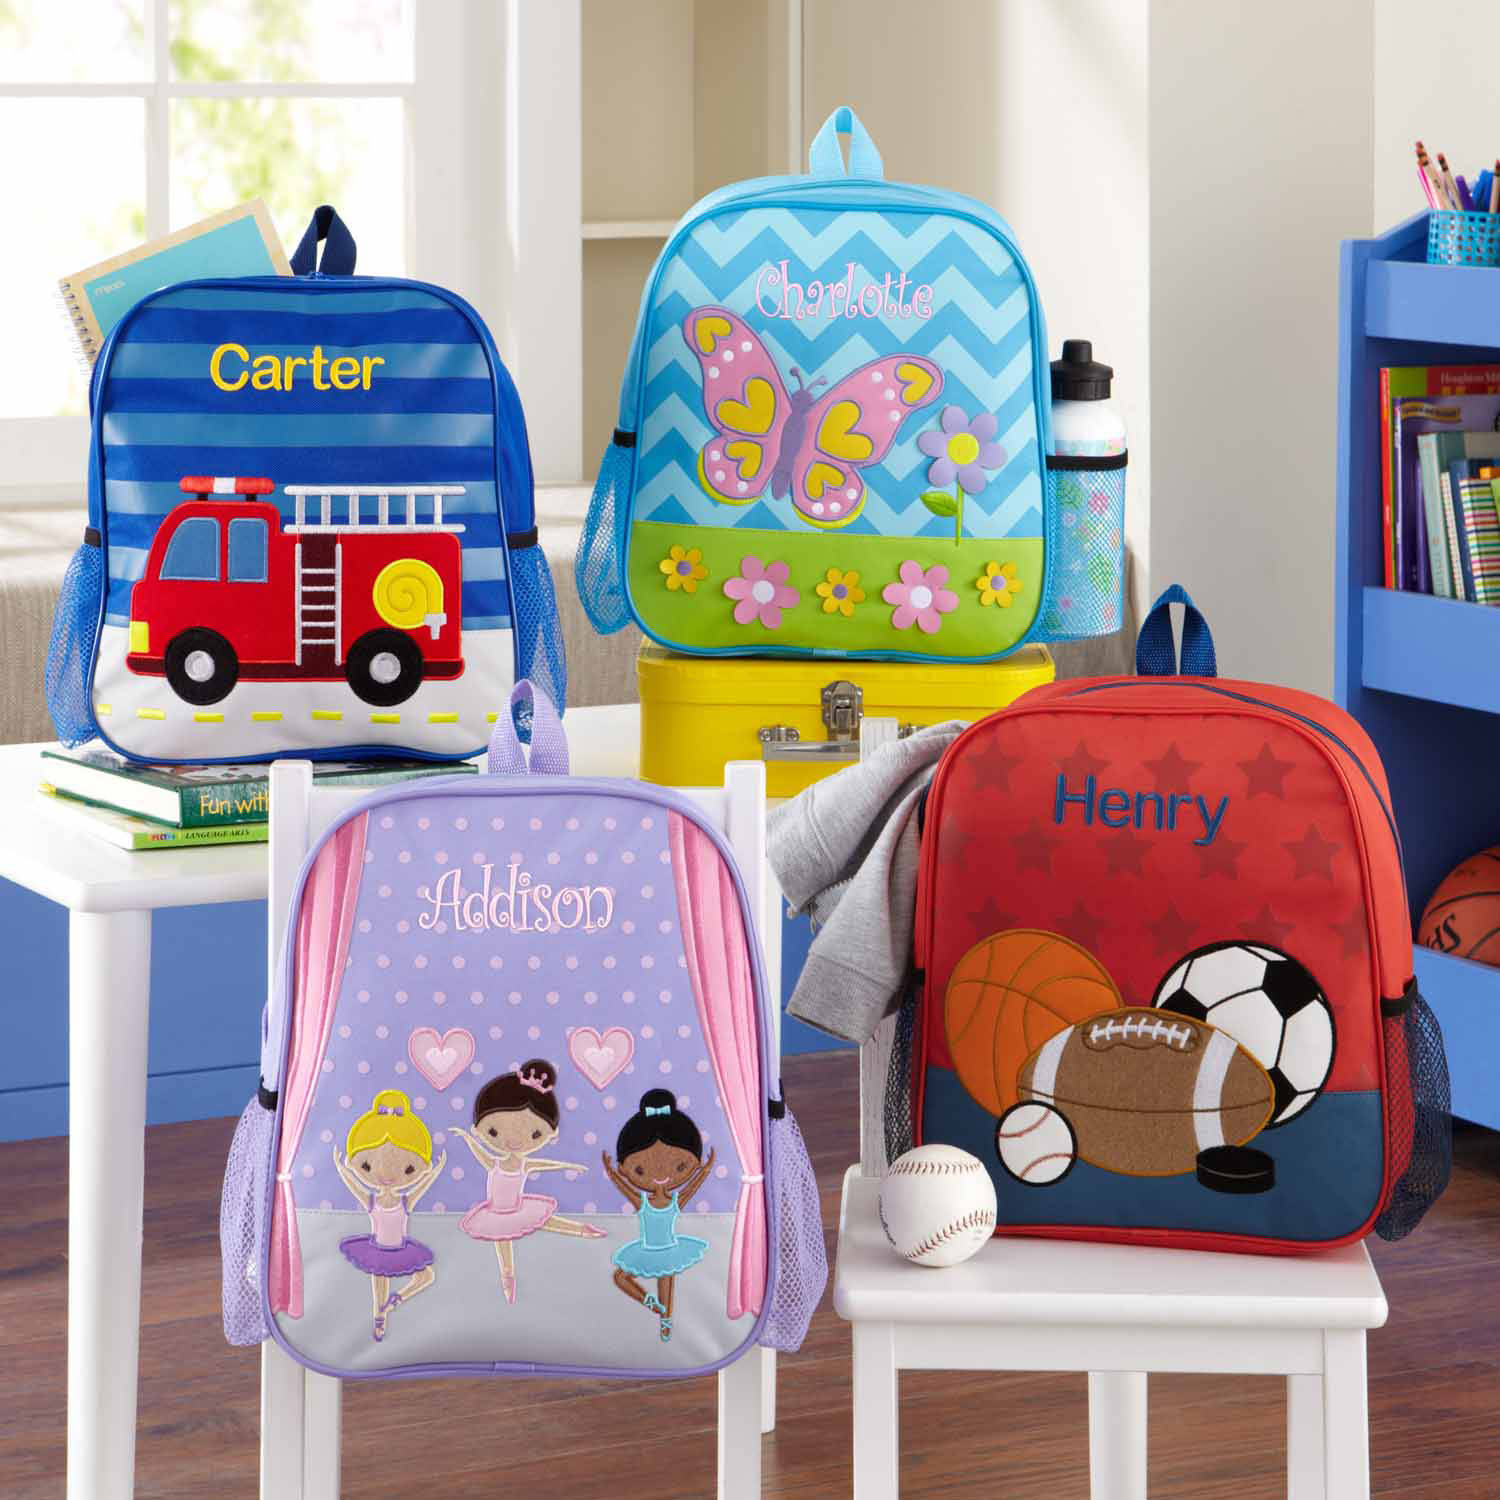 Personalized Just for Me Backpack - Walmart.com